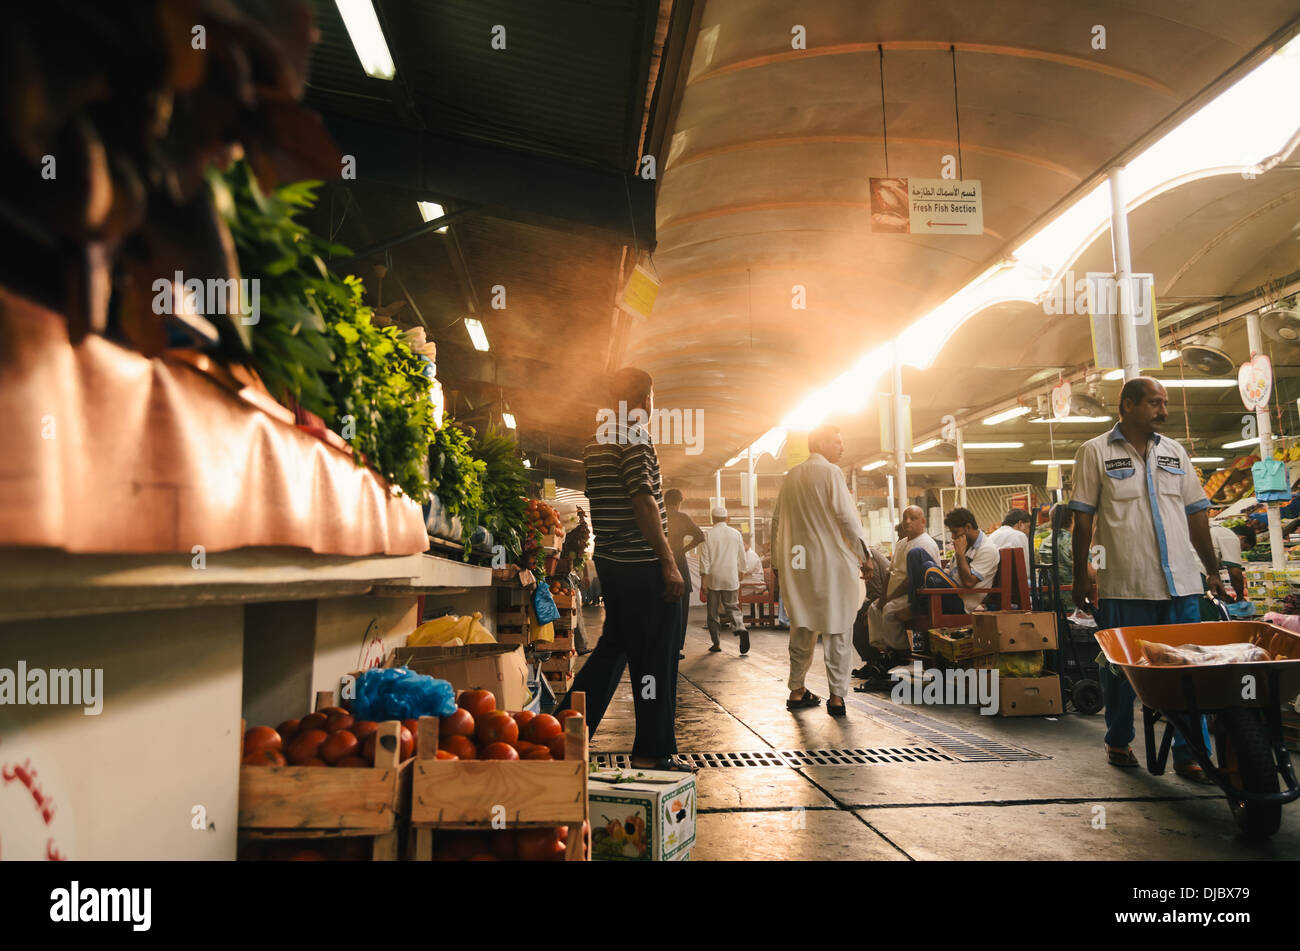 Arab men walking along one of the corridors at Deira's Fruit and Vegetable Market during sunrise. Dubai, UAE. - Stock Image